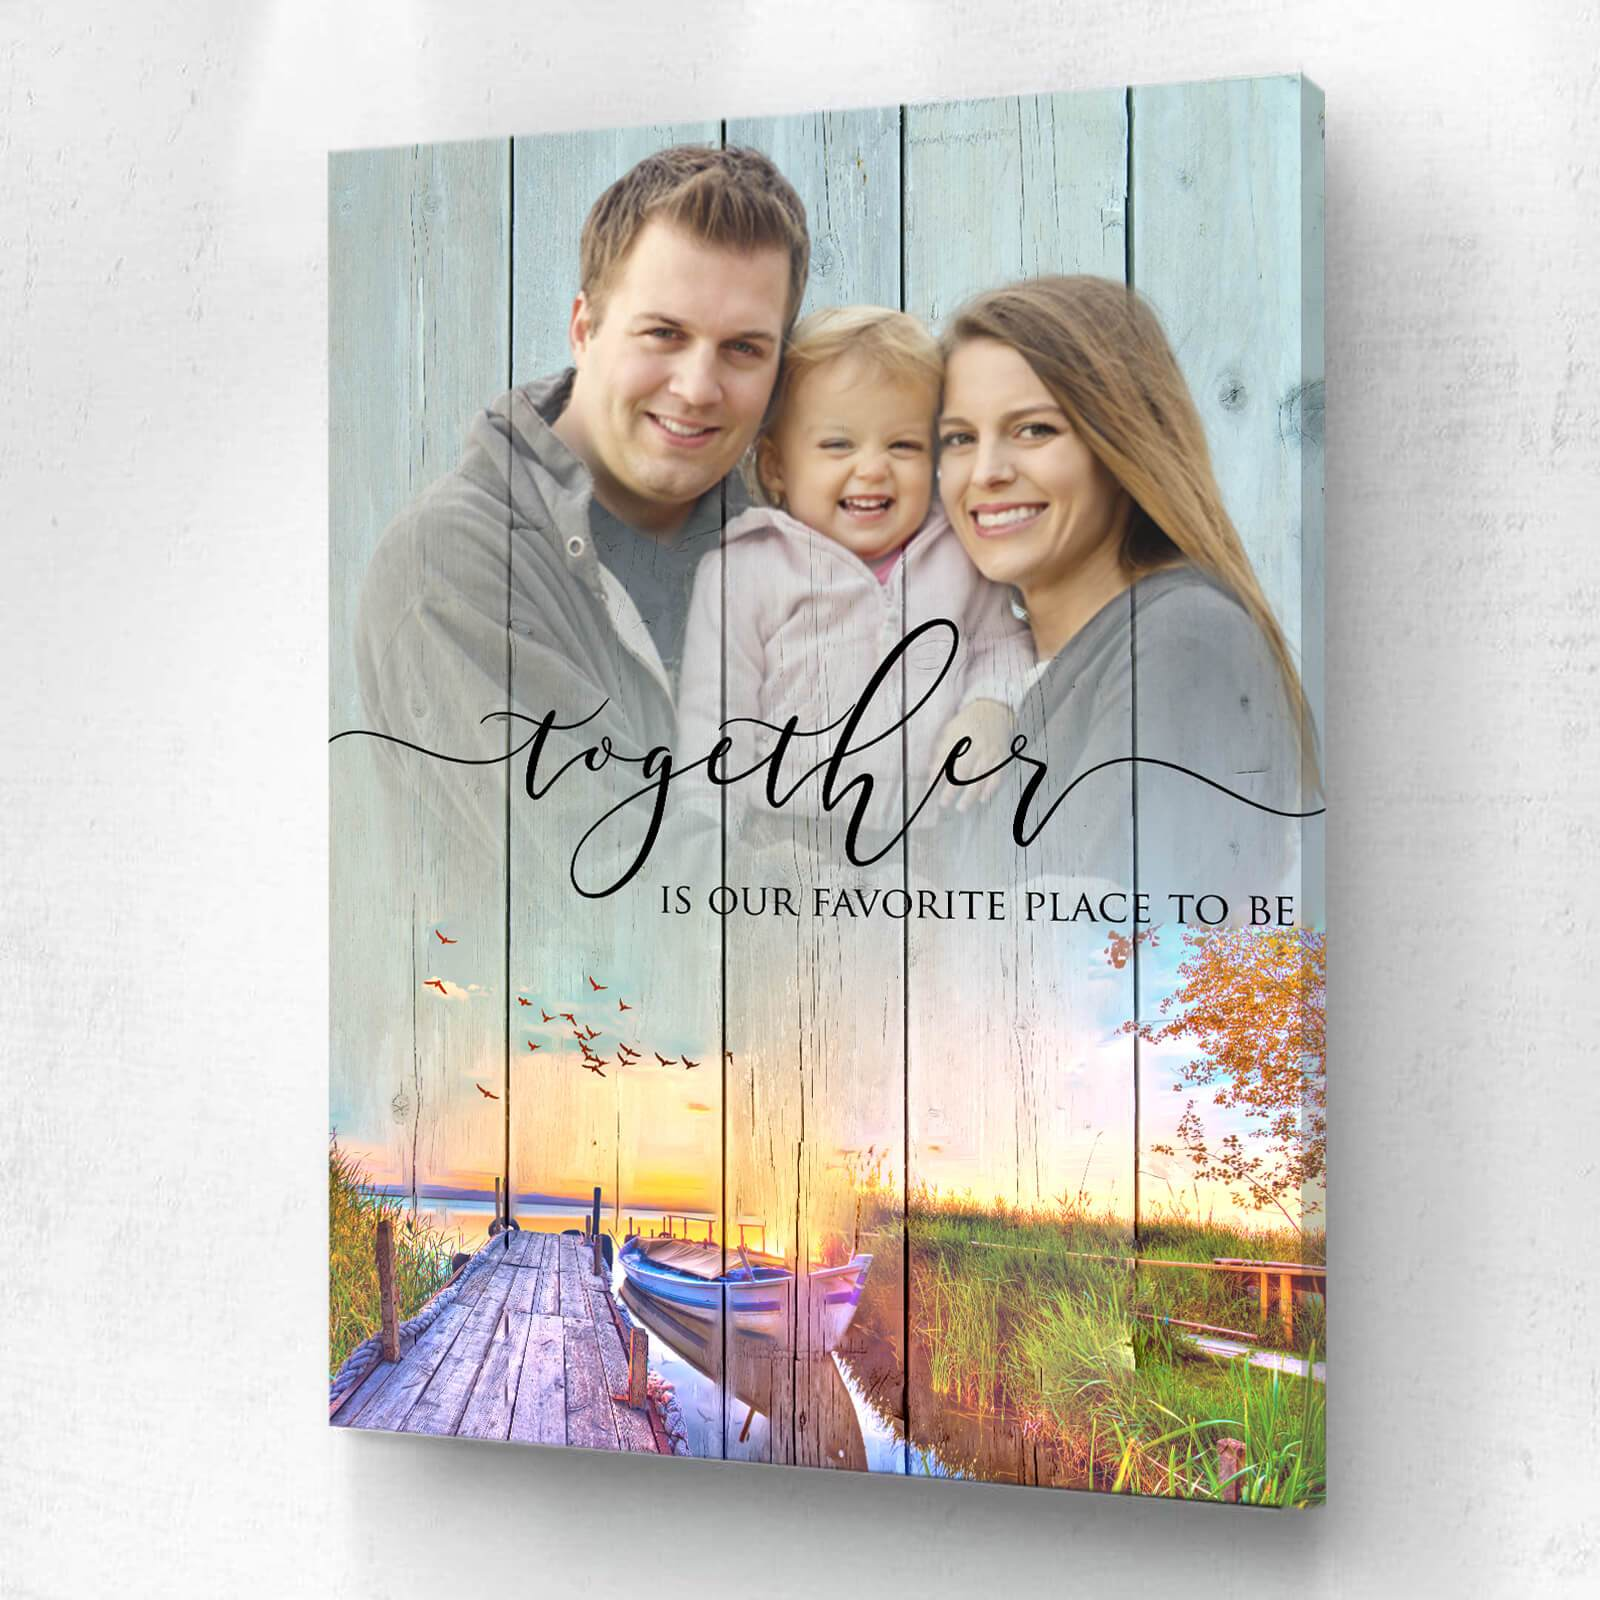 Together Is Our Favorite Place To Be Custom Photo Upload